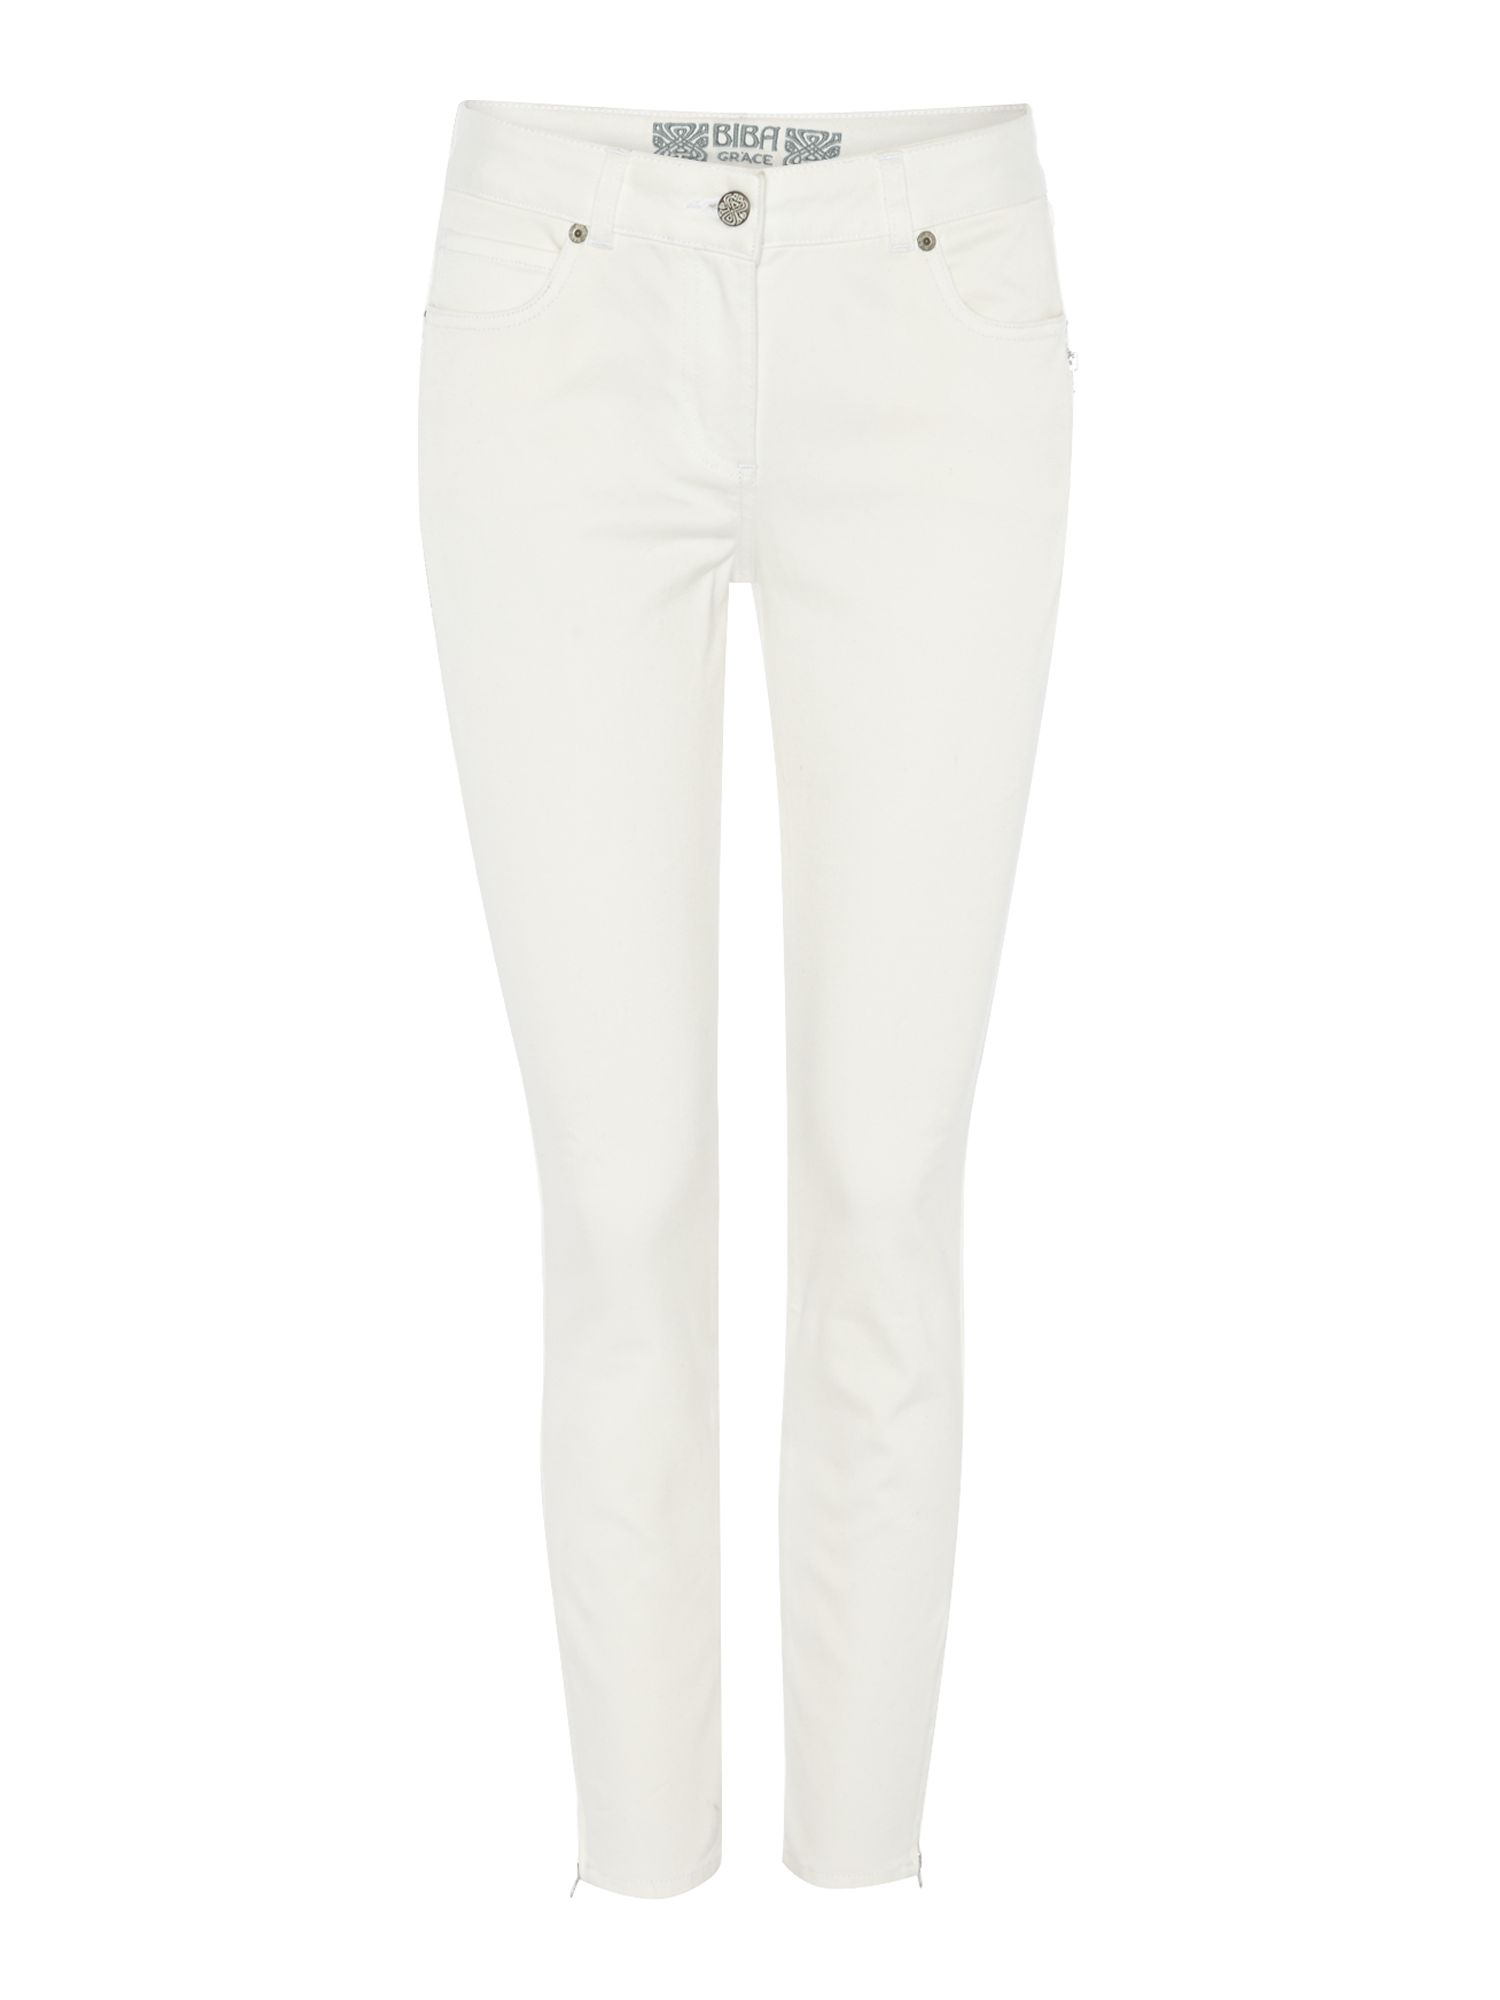 Ankle zip detail jeans